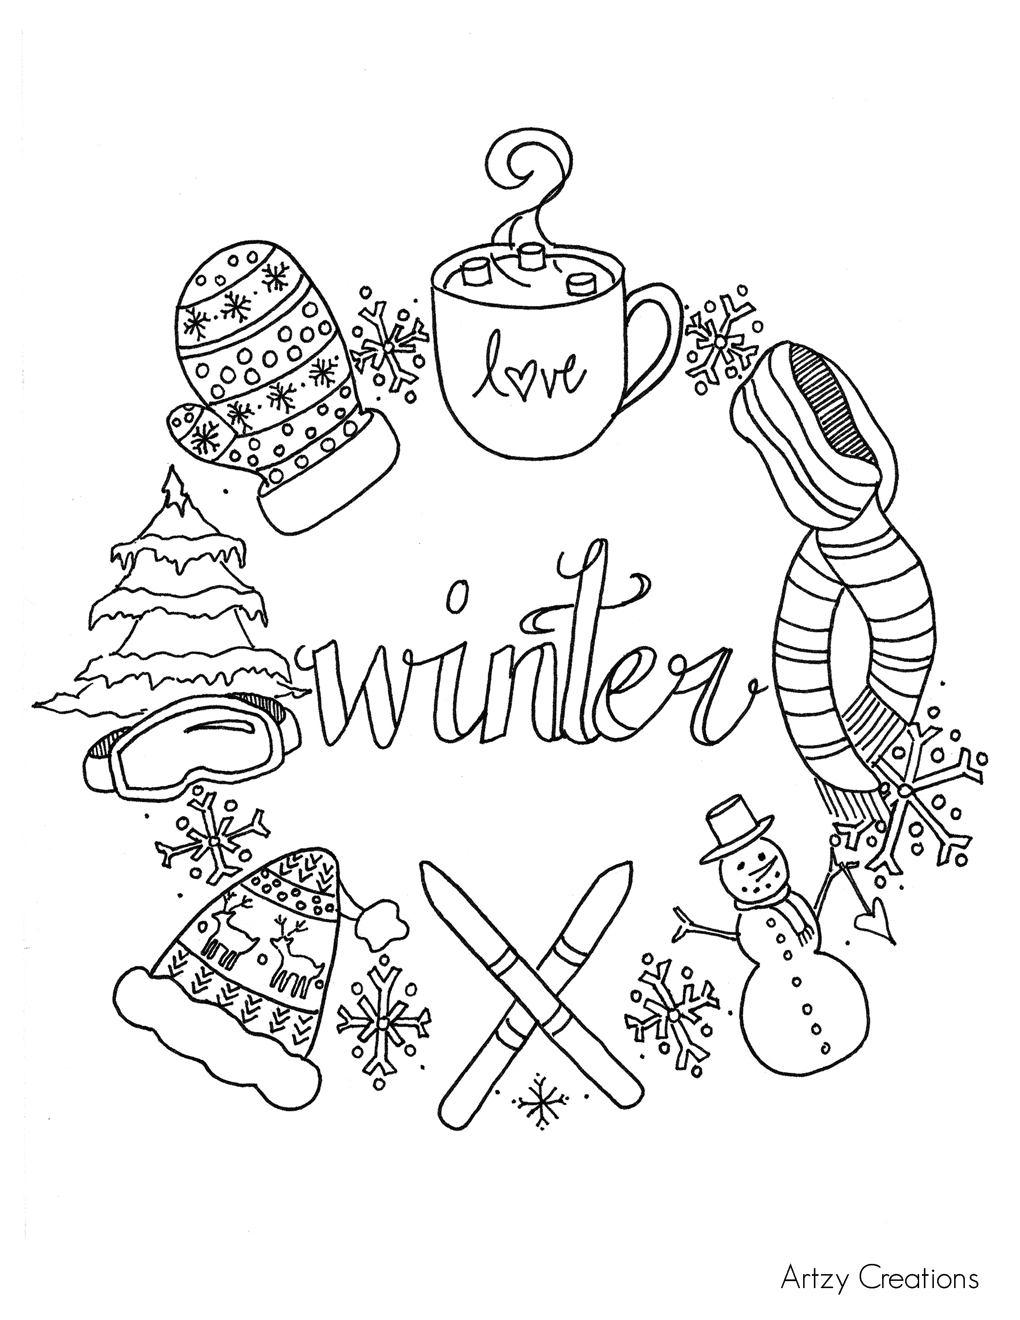 Free Winter Coloring Page - artzycreations.com | winter coloring pages for adults